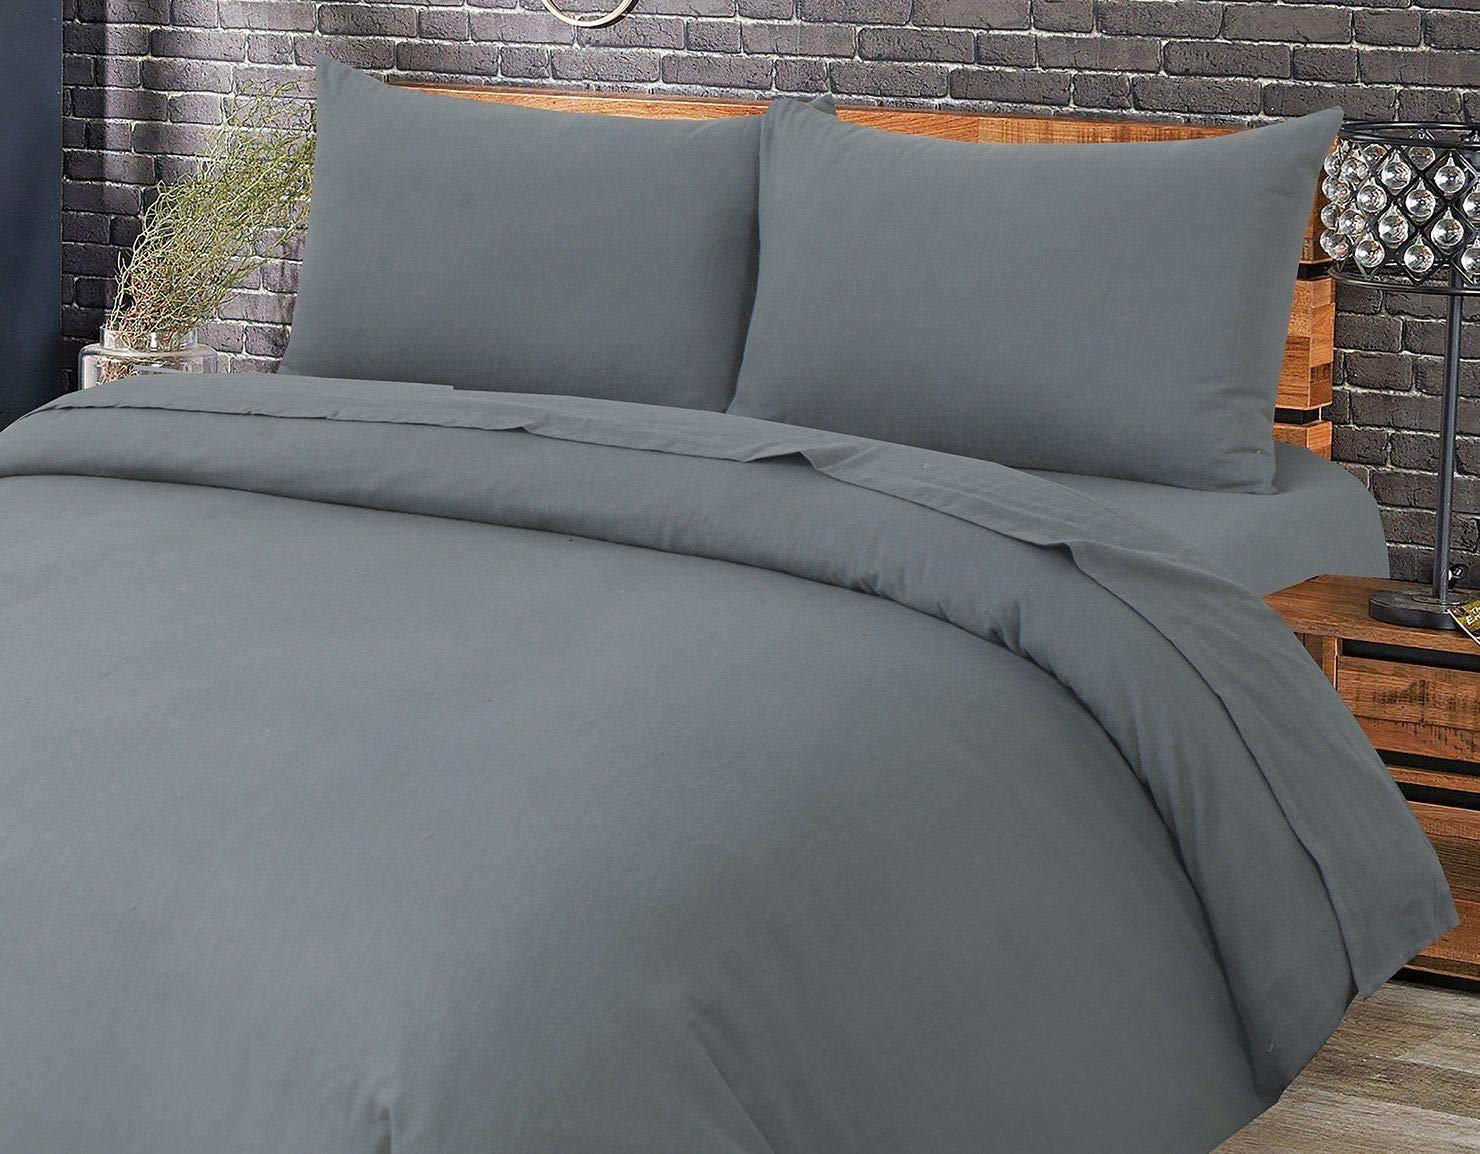 Flannel 100/% Natural Brushed Cotton Fitted and Flat Sheet Sets with Pillowcases